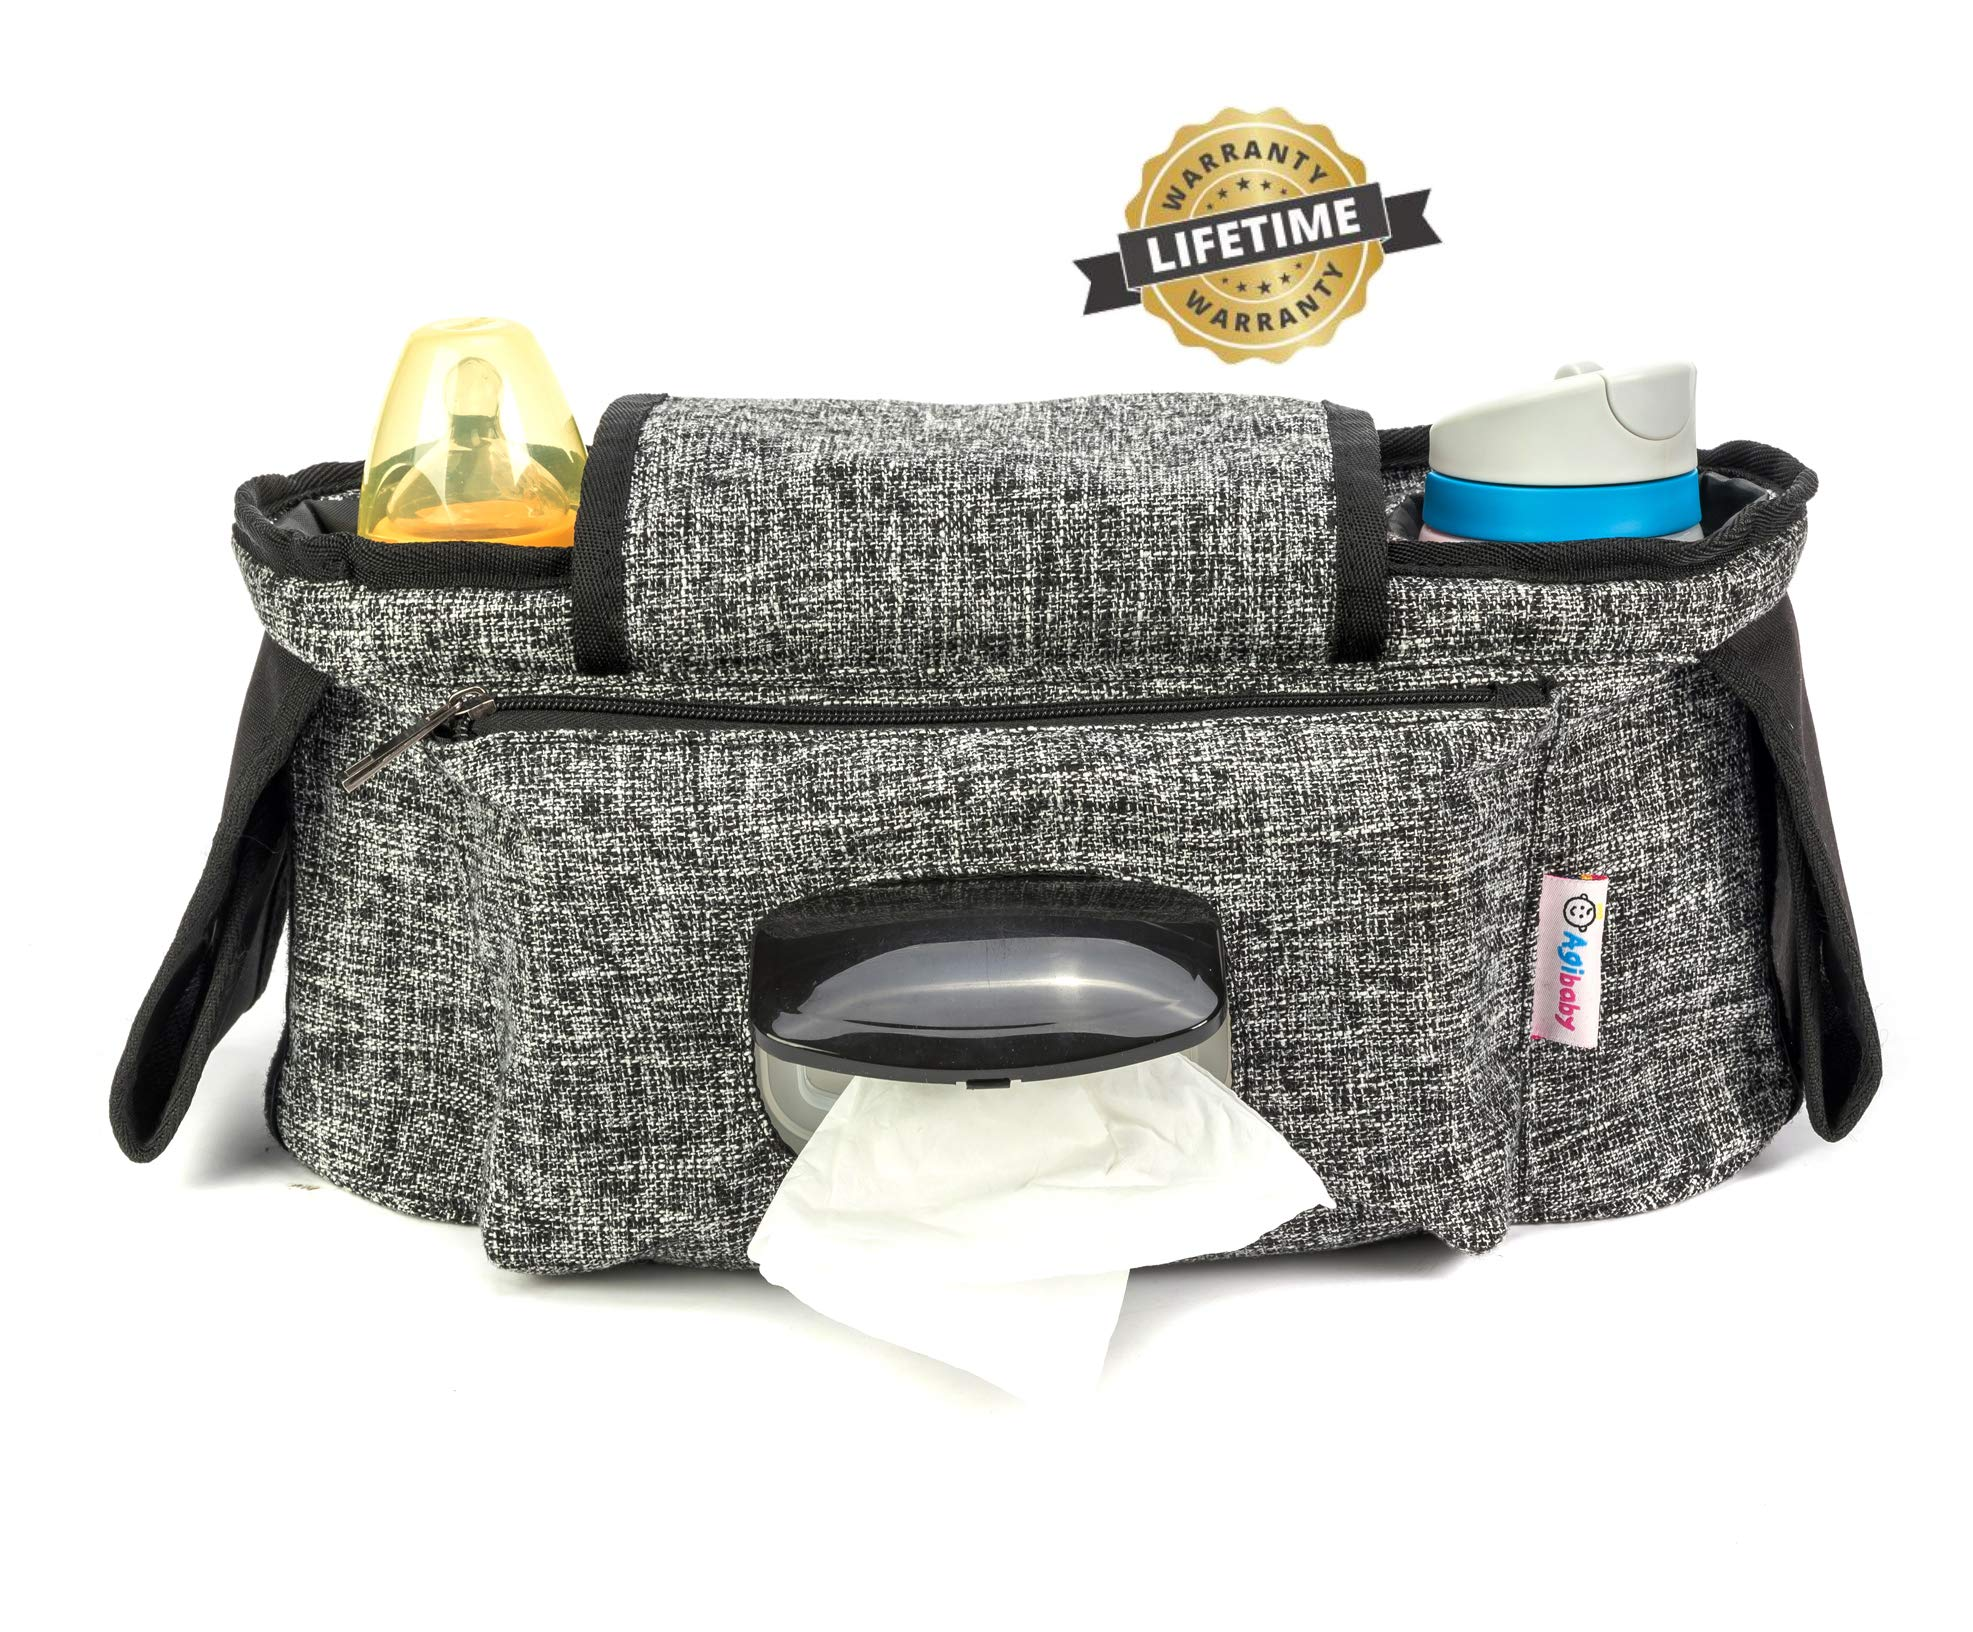 Agibaby Stroller Organizer, Insulated Deep Cup Holders, Instant Access Wipe Pocket, Universal Strap Fit, Large Storage Space